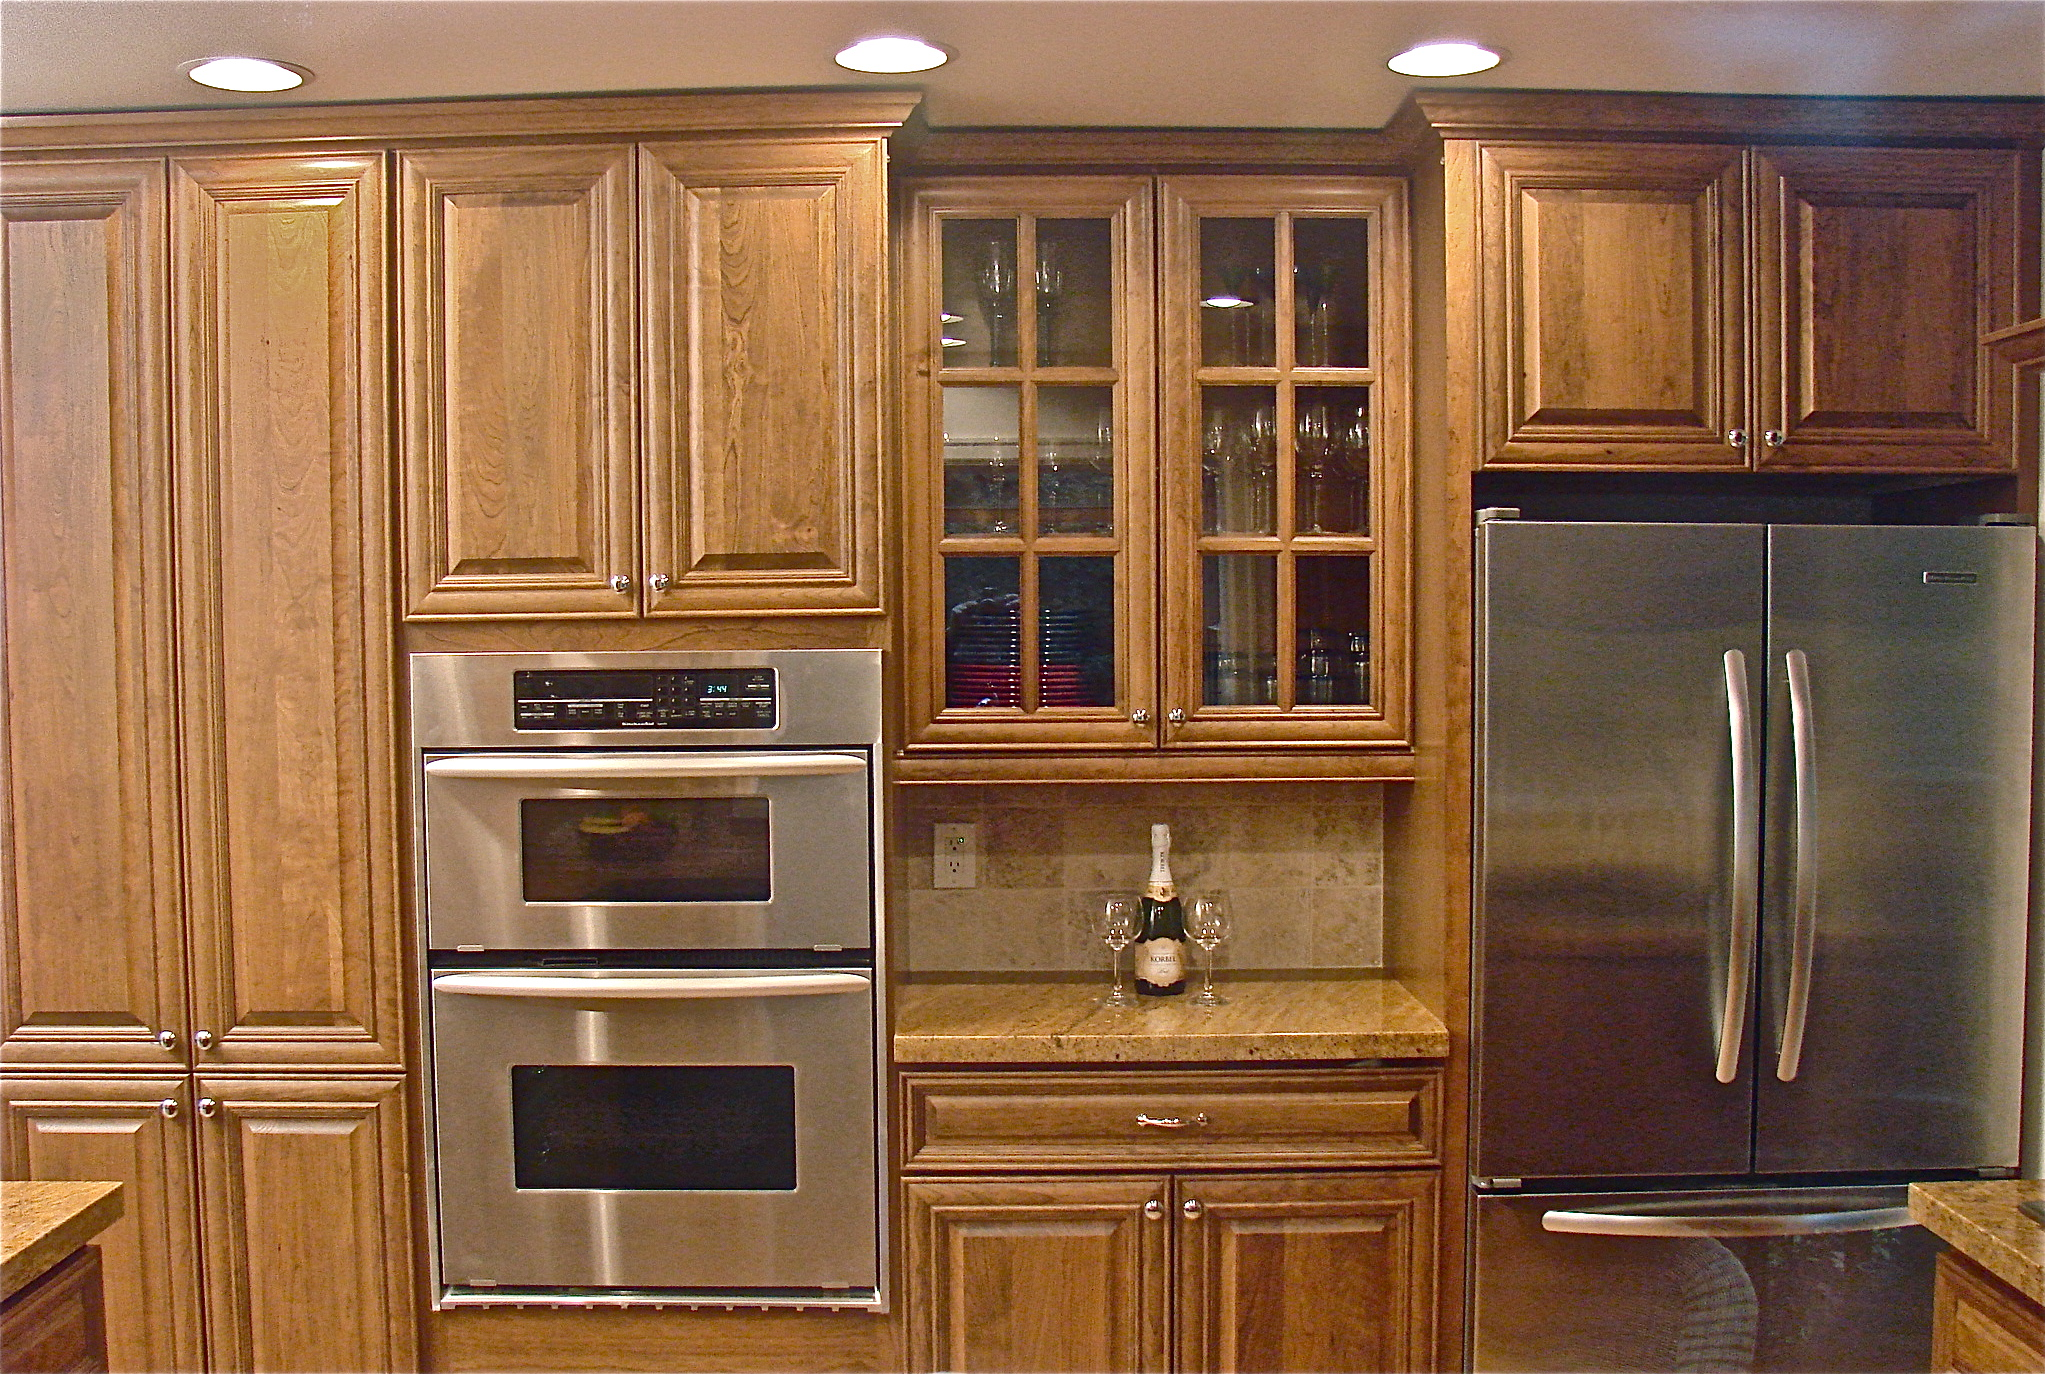 kitchen cabinet stain colors home depot kitchen cabinet stain kitchen cabinet stain colors home depot photo 5